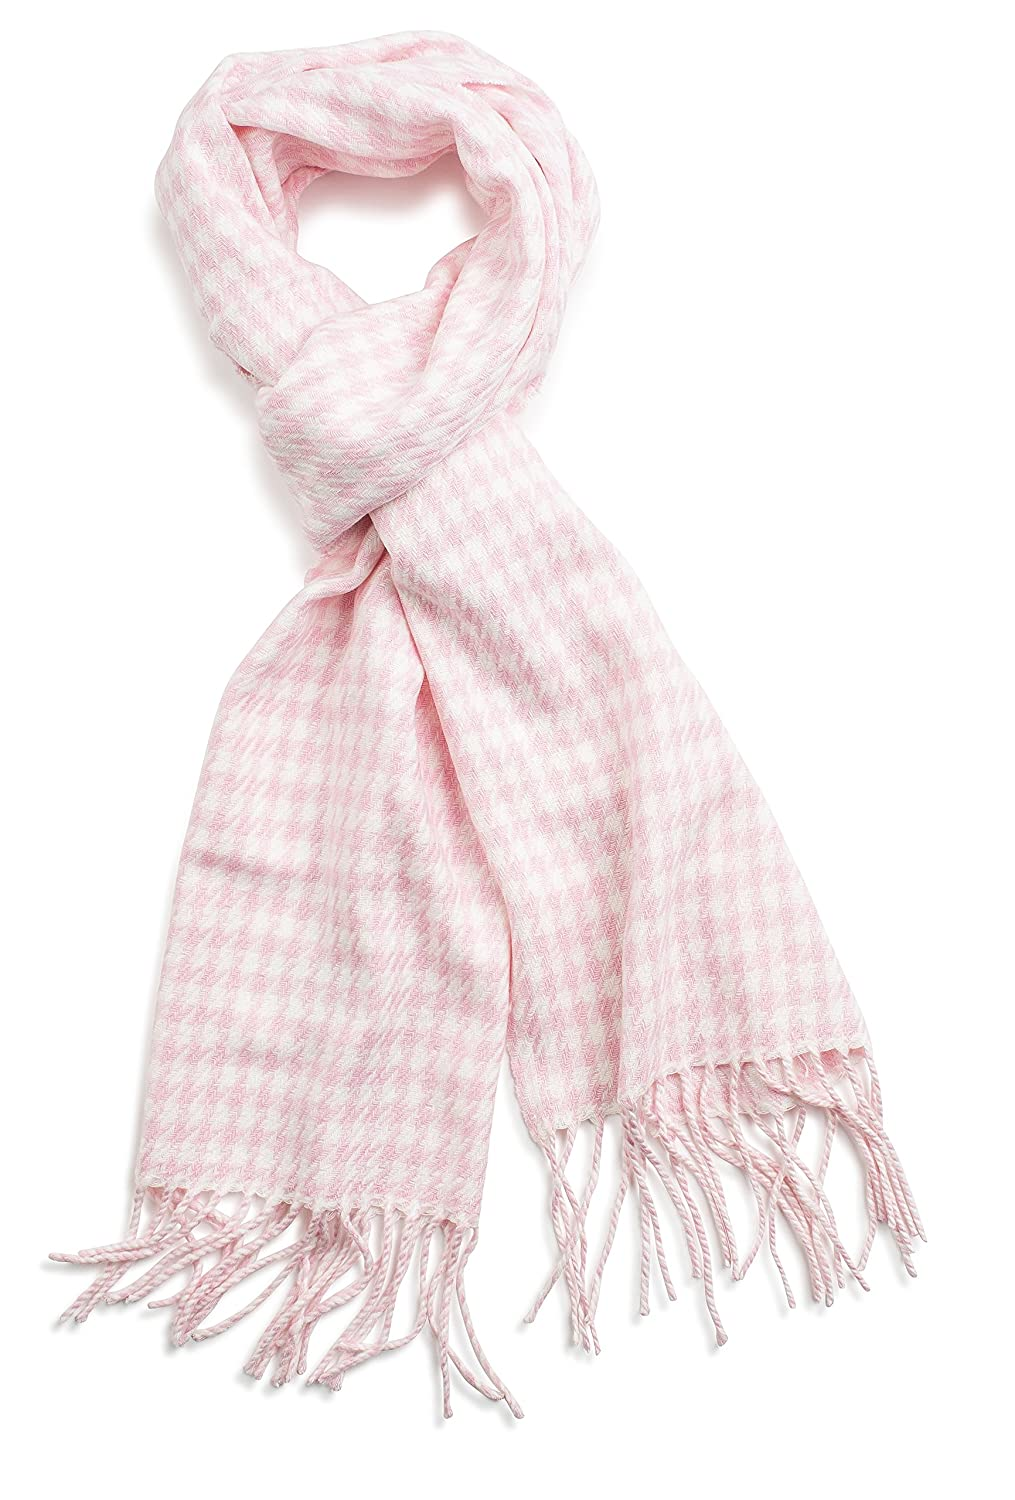 Veronz Super Soft Classic Cashmere Feel Winter Scarf 60 Day Warranty Beige Buffalo Checks VER-BFC2-71-1